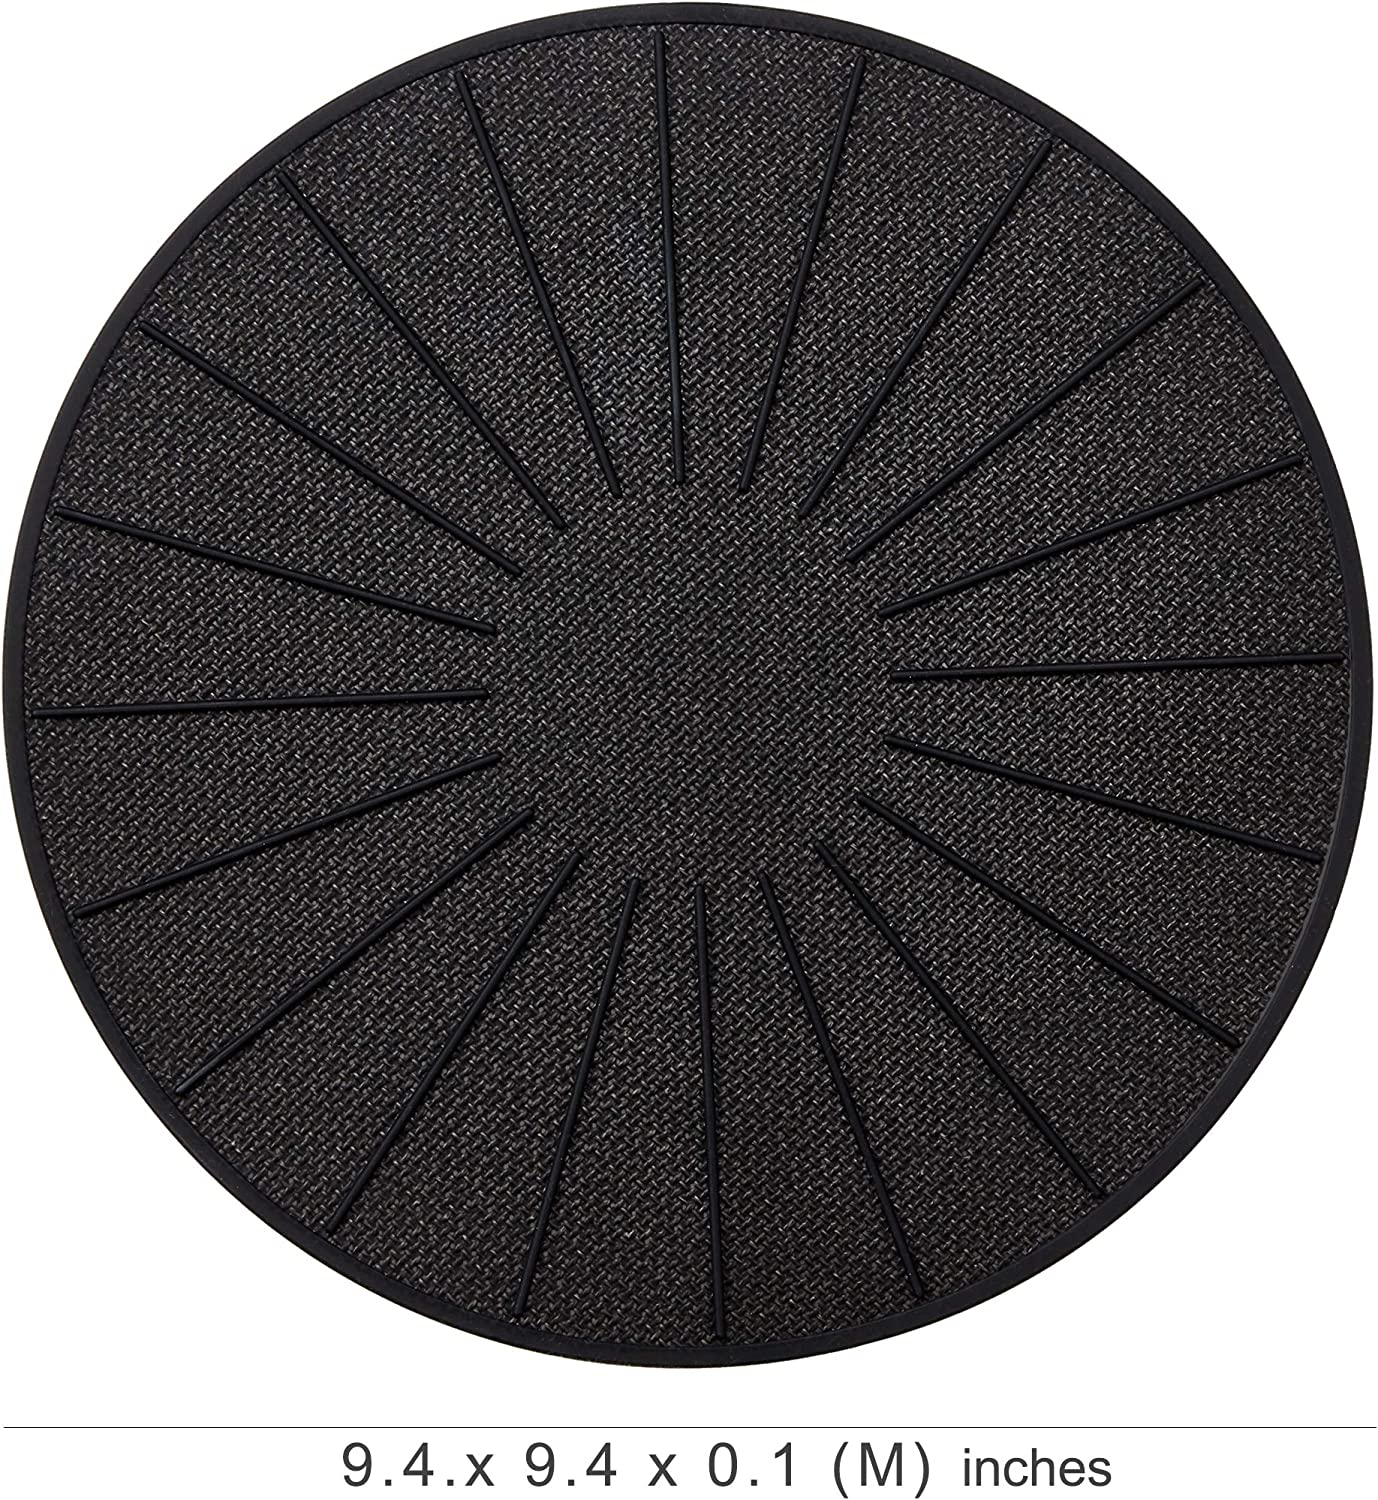 Lazy K Induction Cooktop Mat Black 11 inches for Induction Stove Silicone Fiberglass Magnetic Cooktop Scratch Protector Non slip Pads to Prevent Pots from Sliding during Cooking